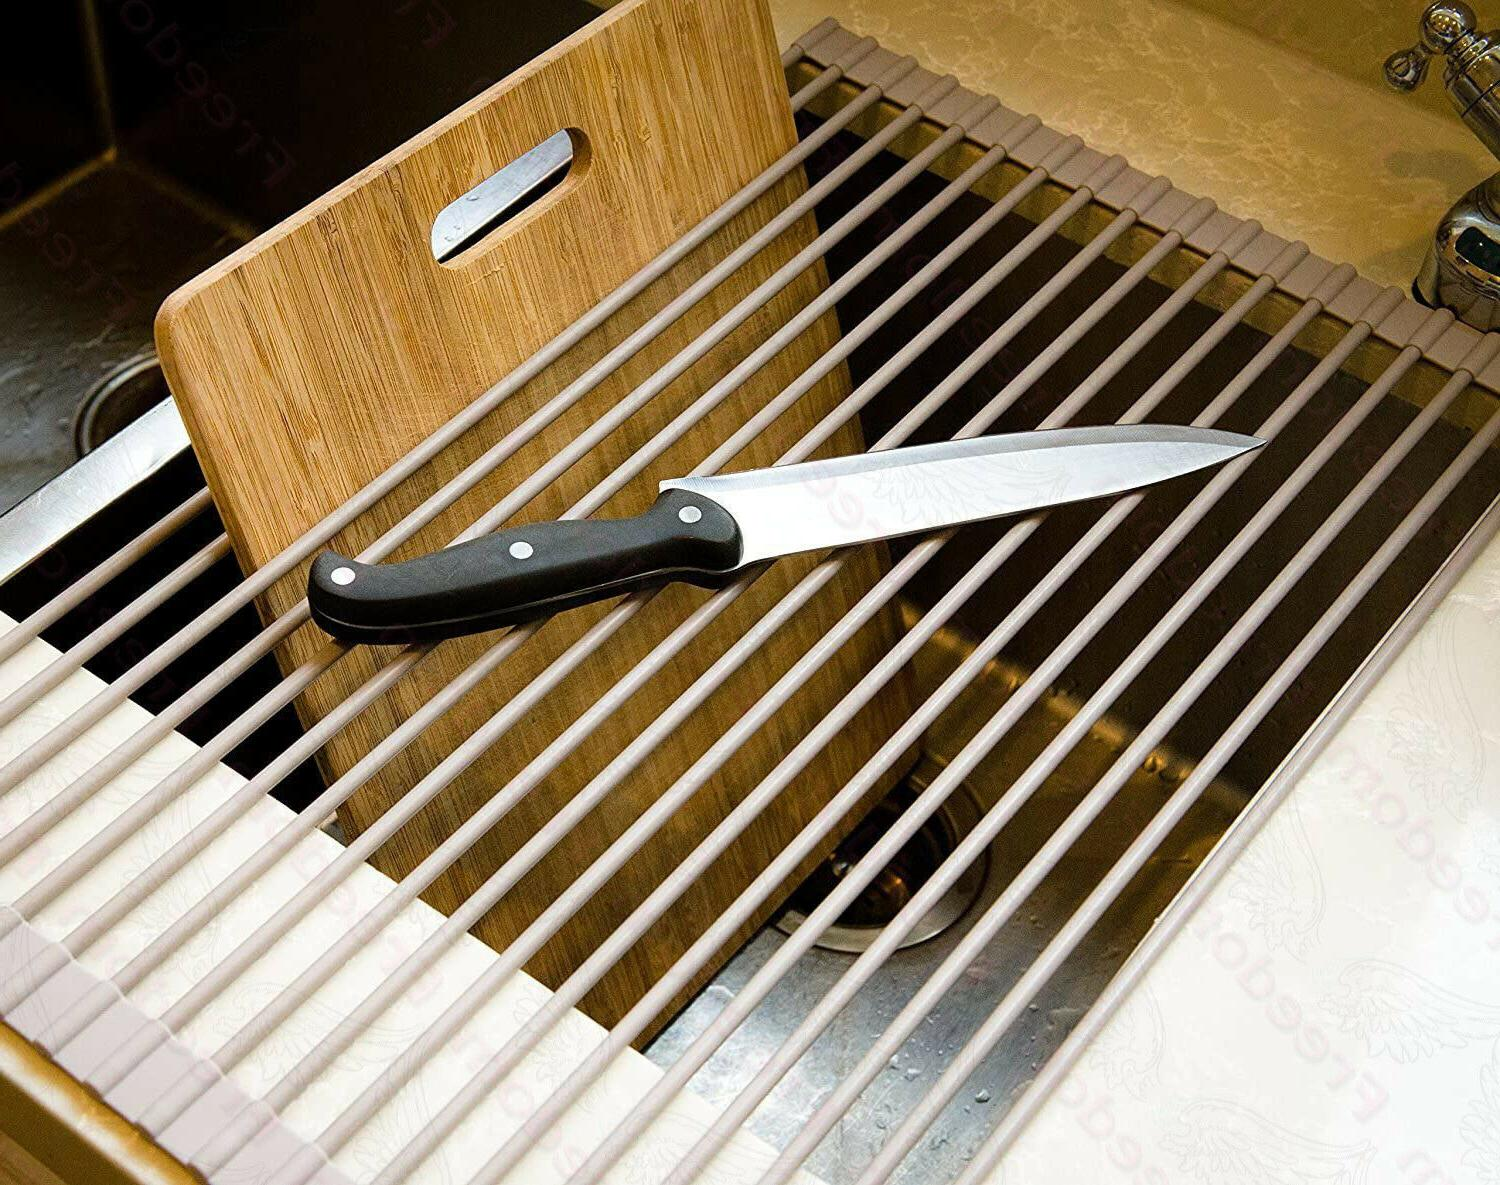 Surpahs Over Sink Multipurpose Roll-Up Dish Drying Rack